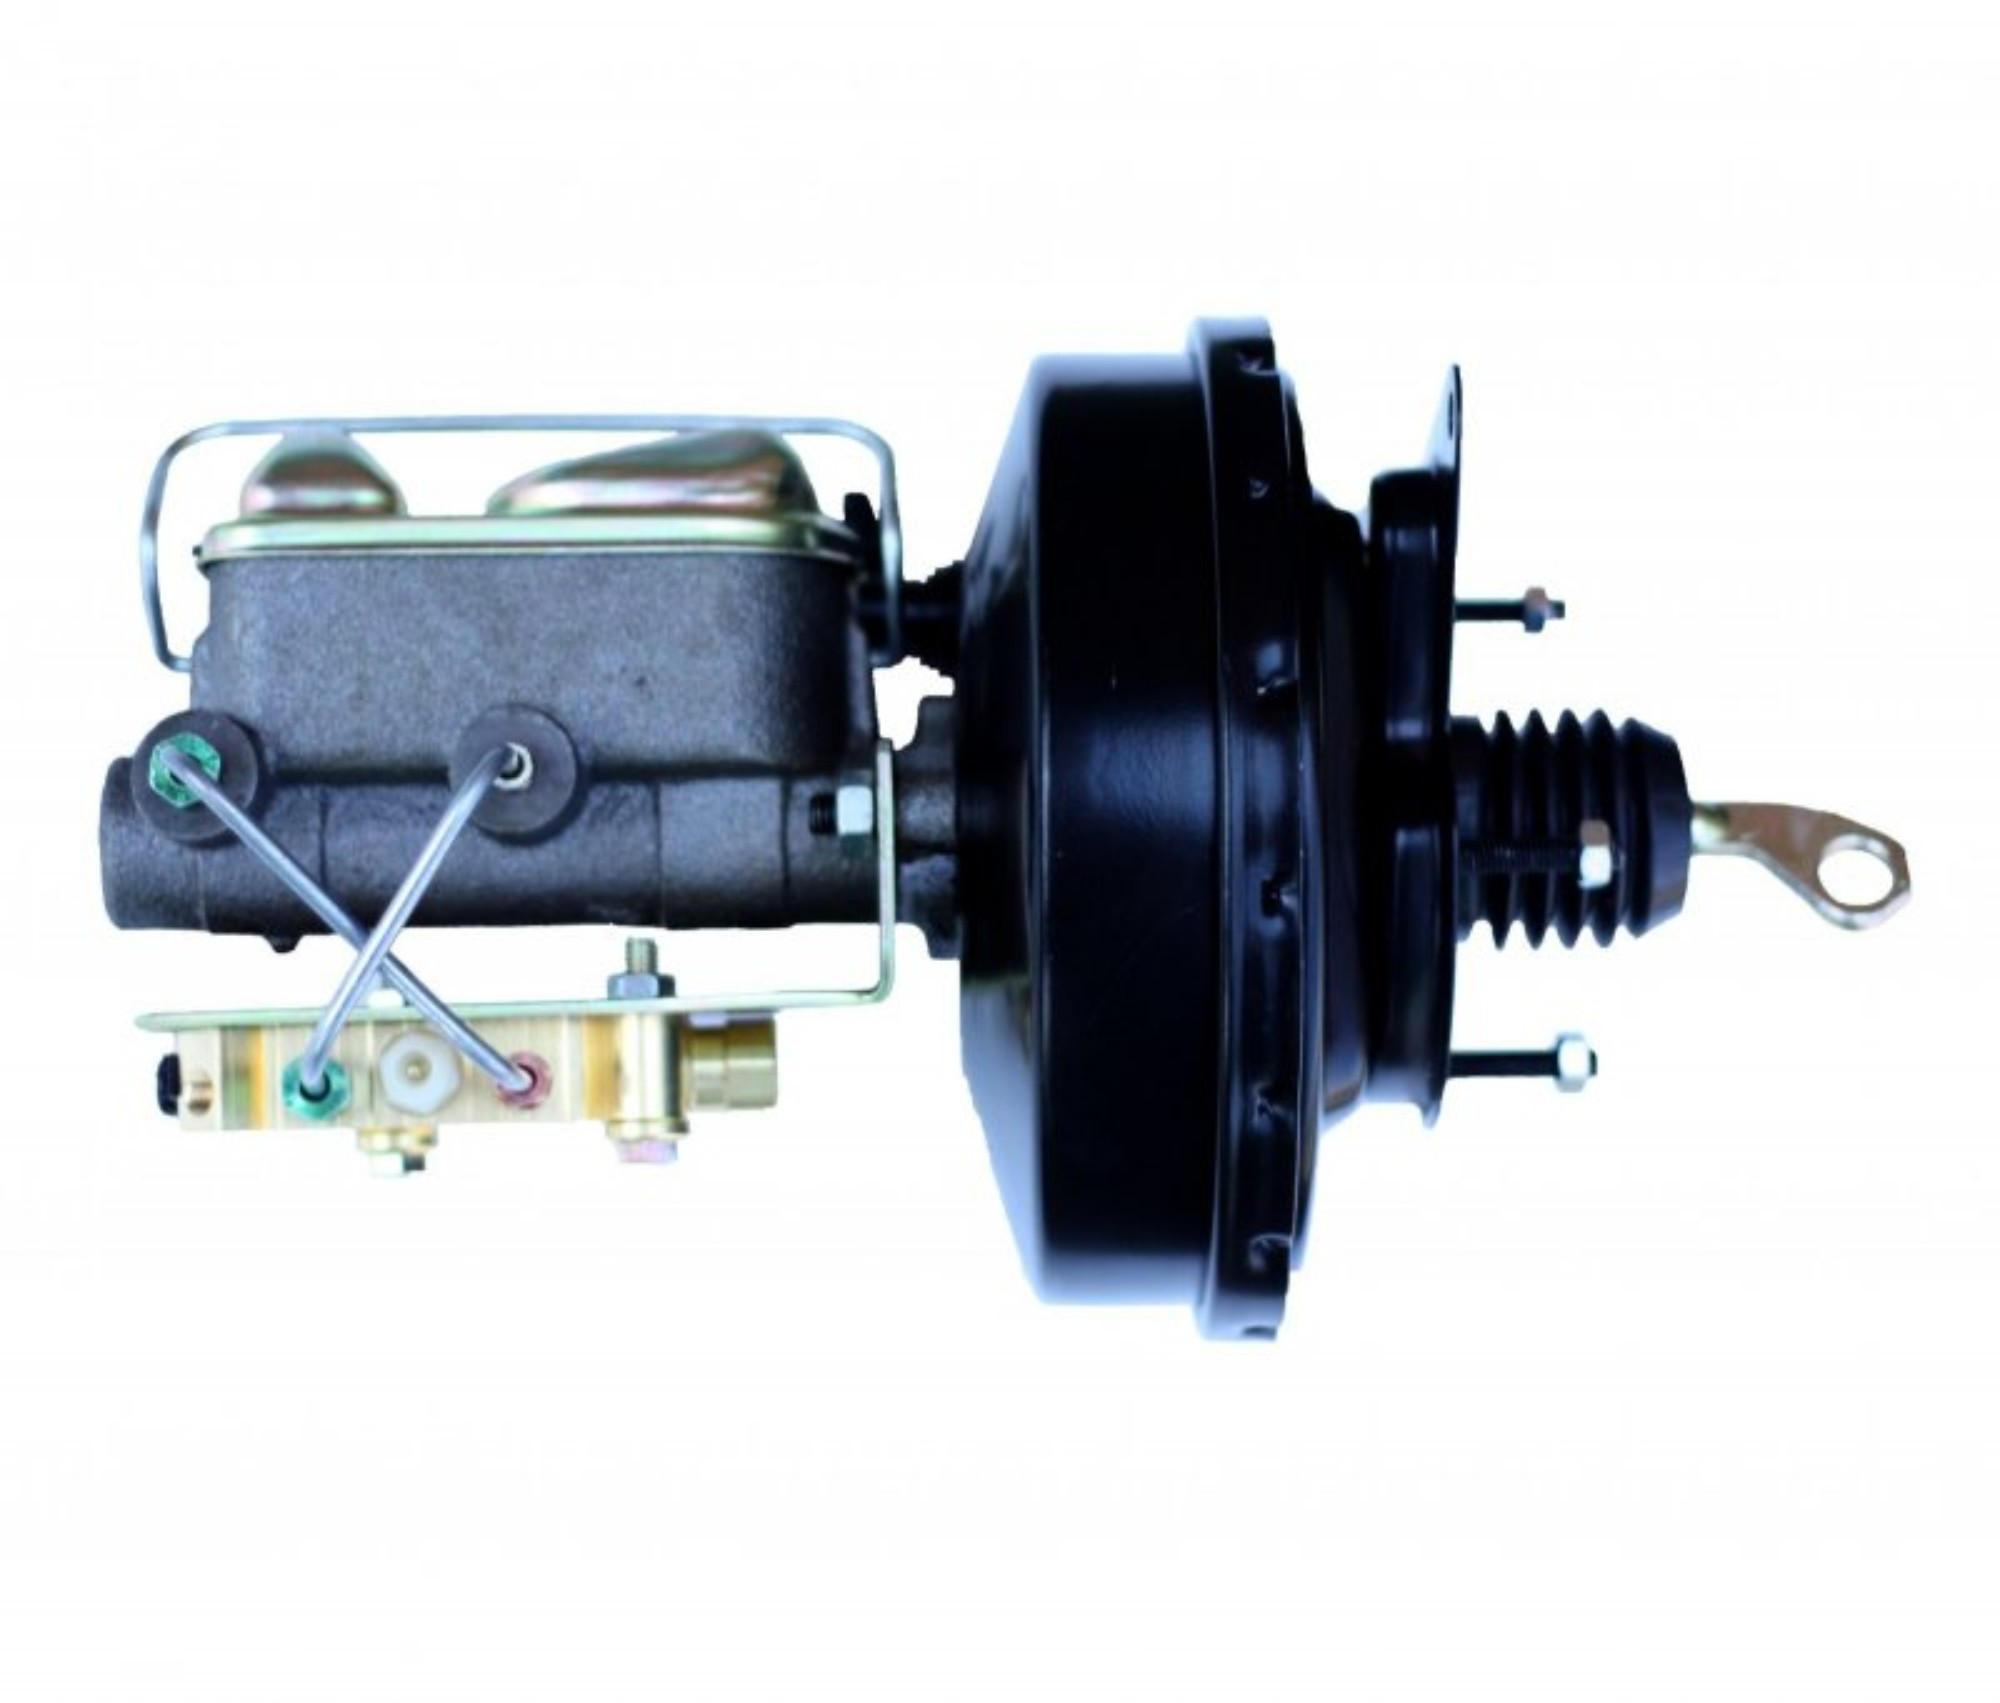 LEED Brakes 03473 9 in Power Brake Booster 1 in bore Master Cylinder disc/disc